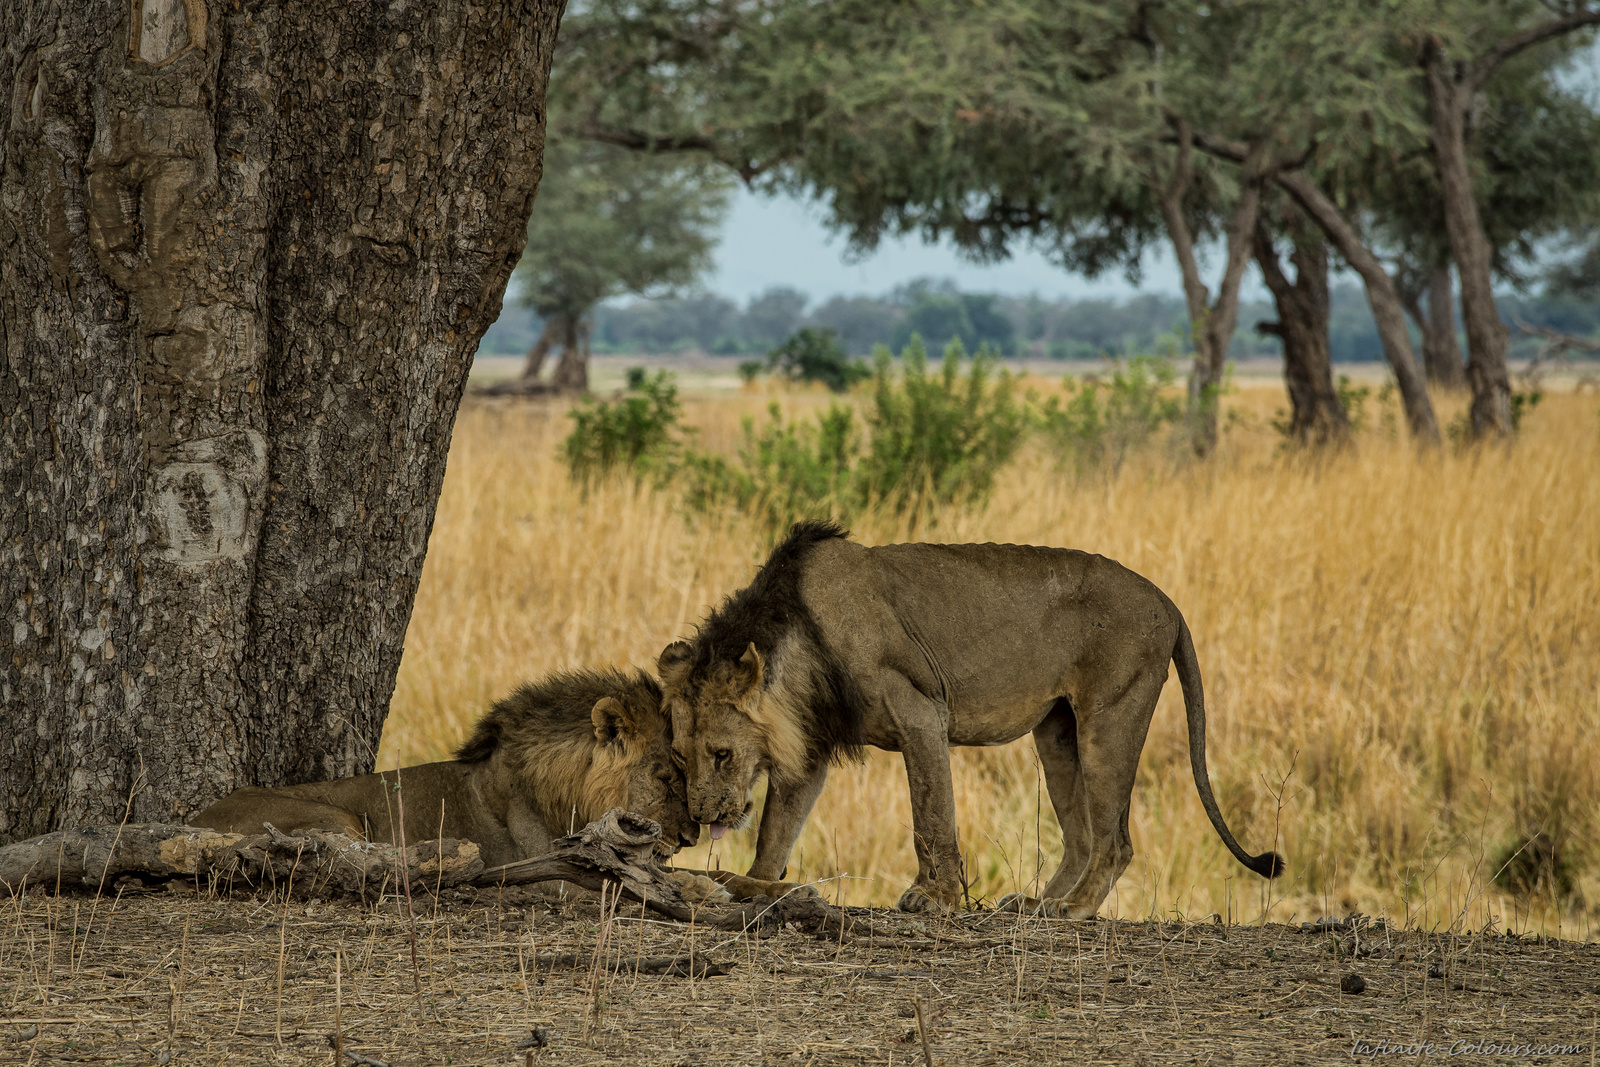 Mana Pools Zimbabwe lion pride lion brothers king of zimbabwe nyamepi campground